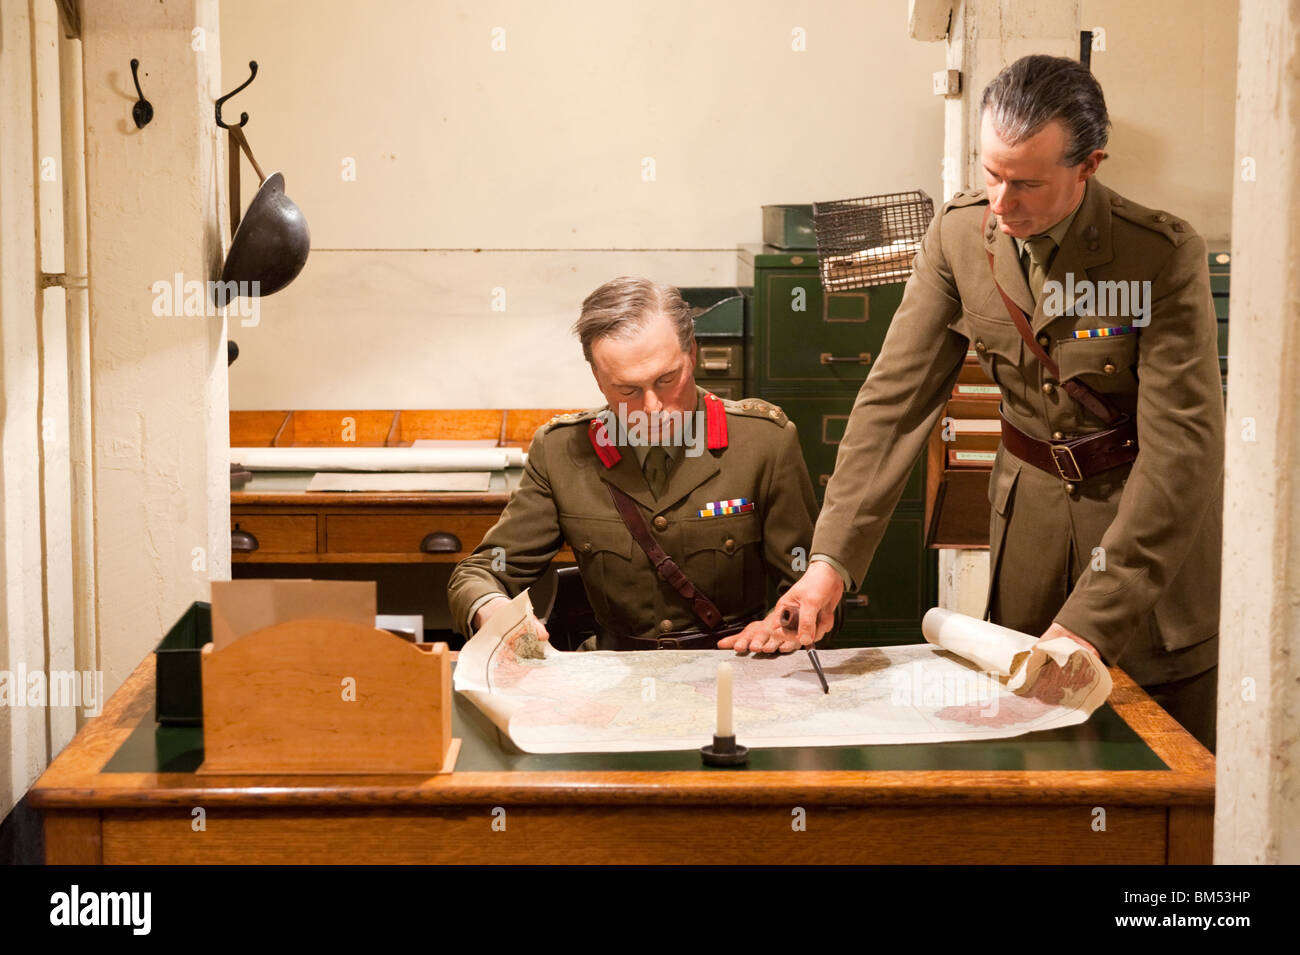 Model of army officers planning military strategy in the Churchill War Rooms museum, London, England, UK - Stock Image